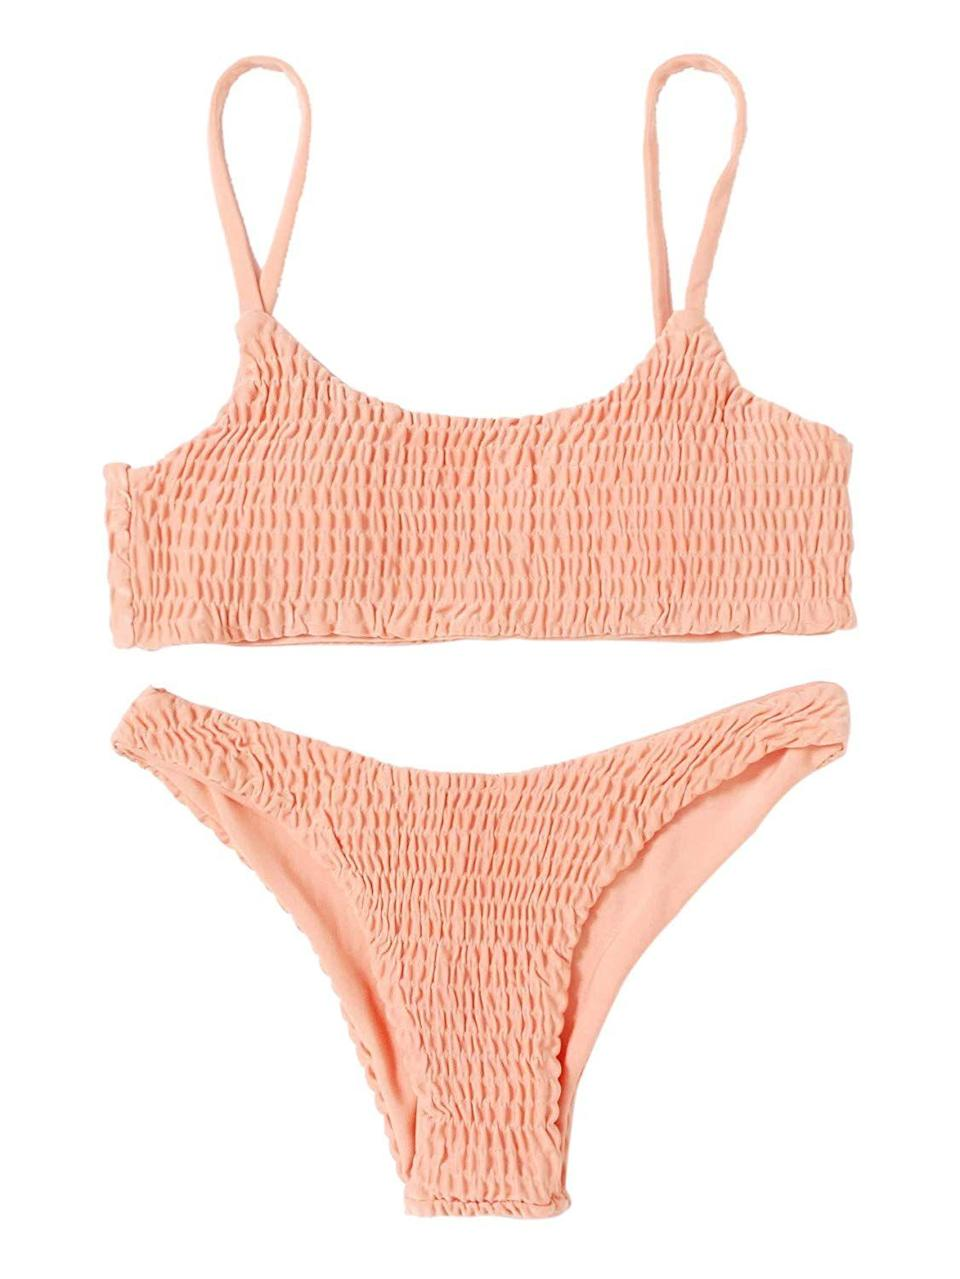 This suit comes in 11 colors. This peach would look fabulous on any skin tone. Available in sizes S to XL.